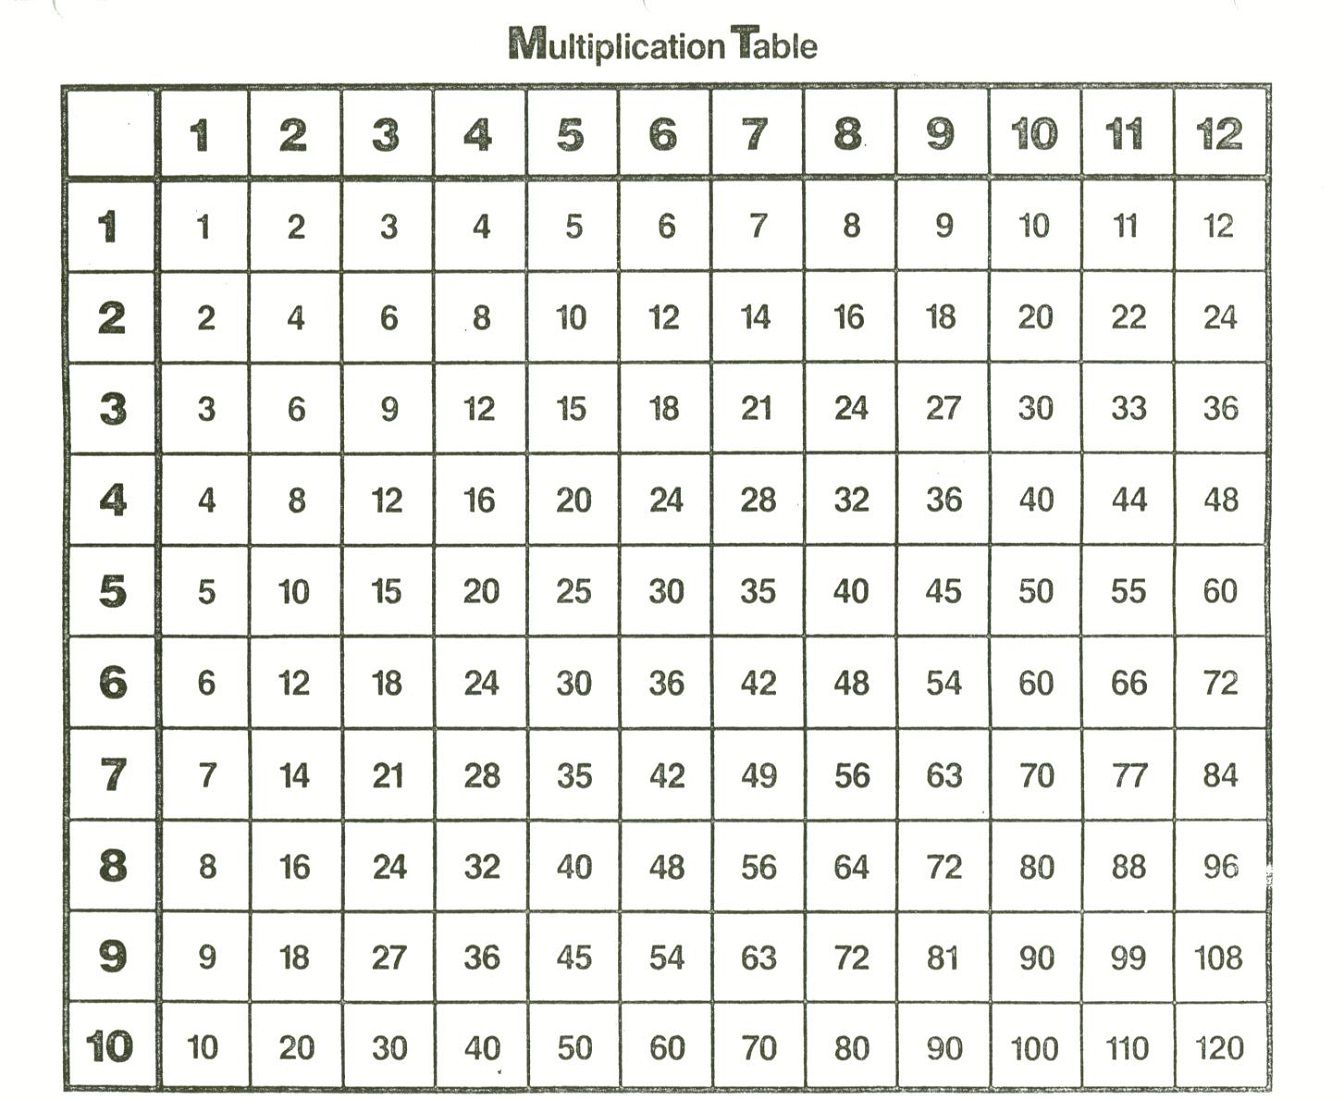 Fabulous image with multiplication facts 1-12 printable